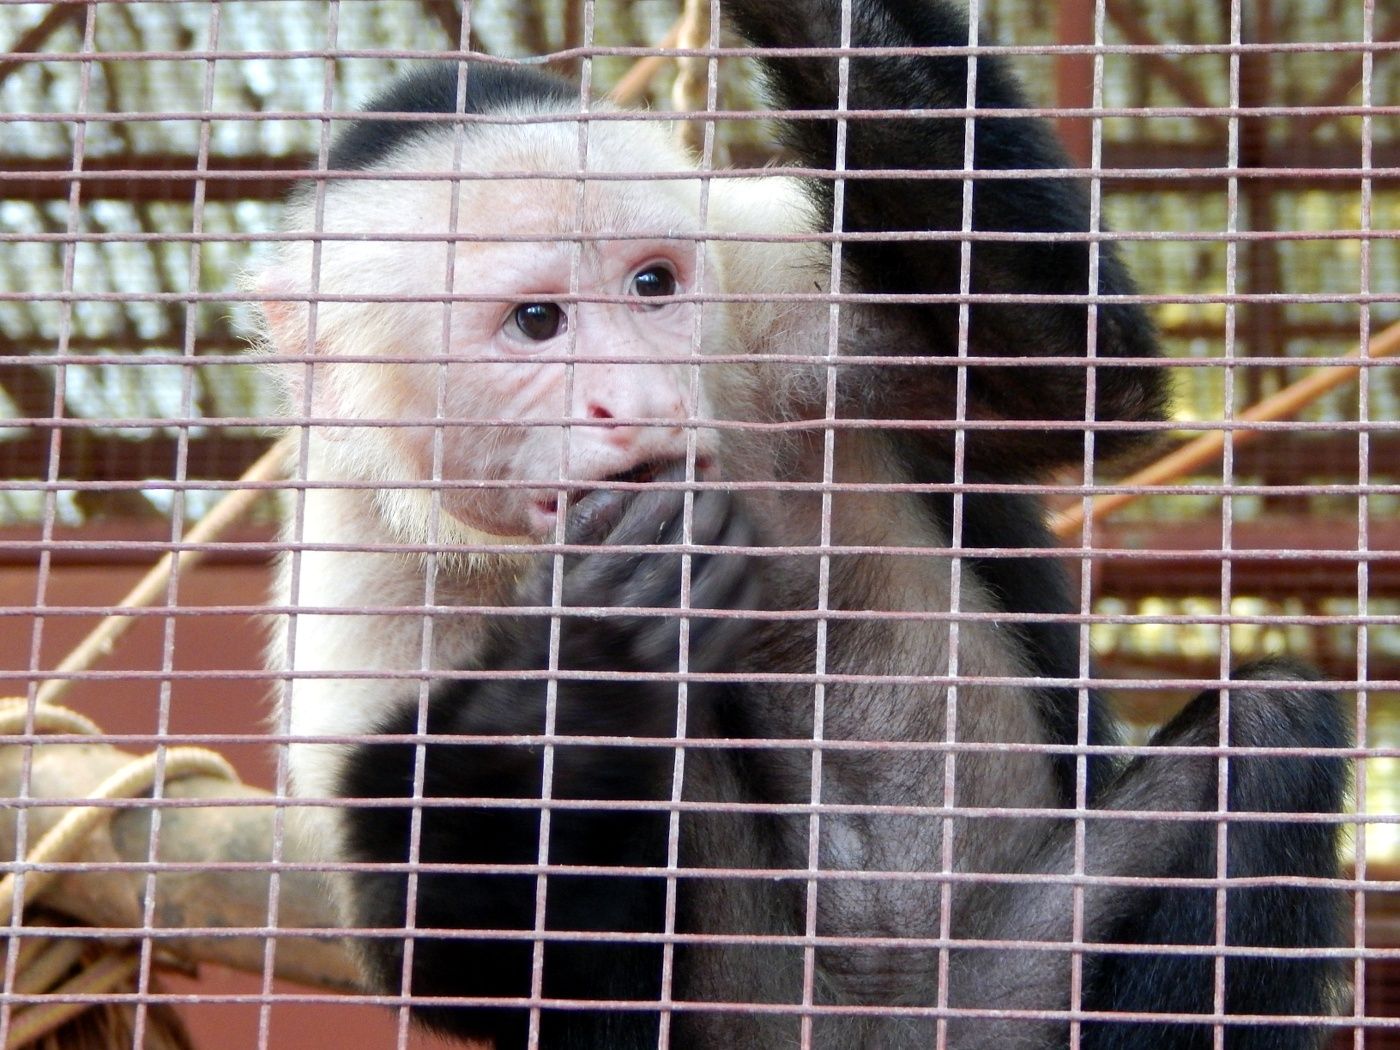 Jaguar Rescue Center Capuchin Monkey